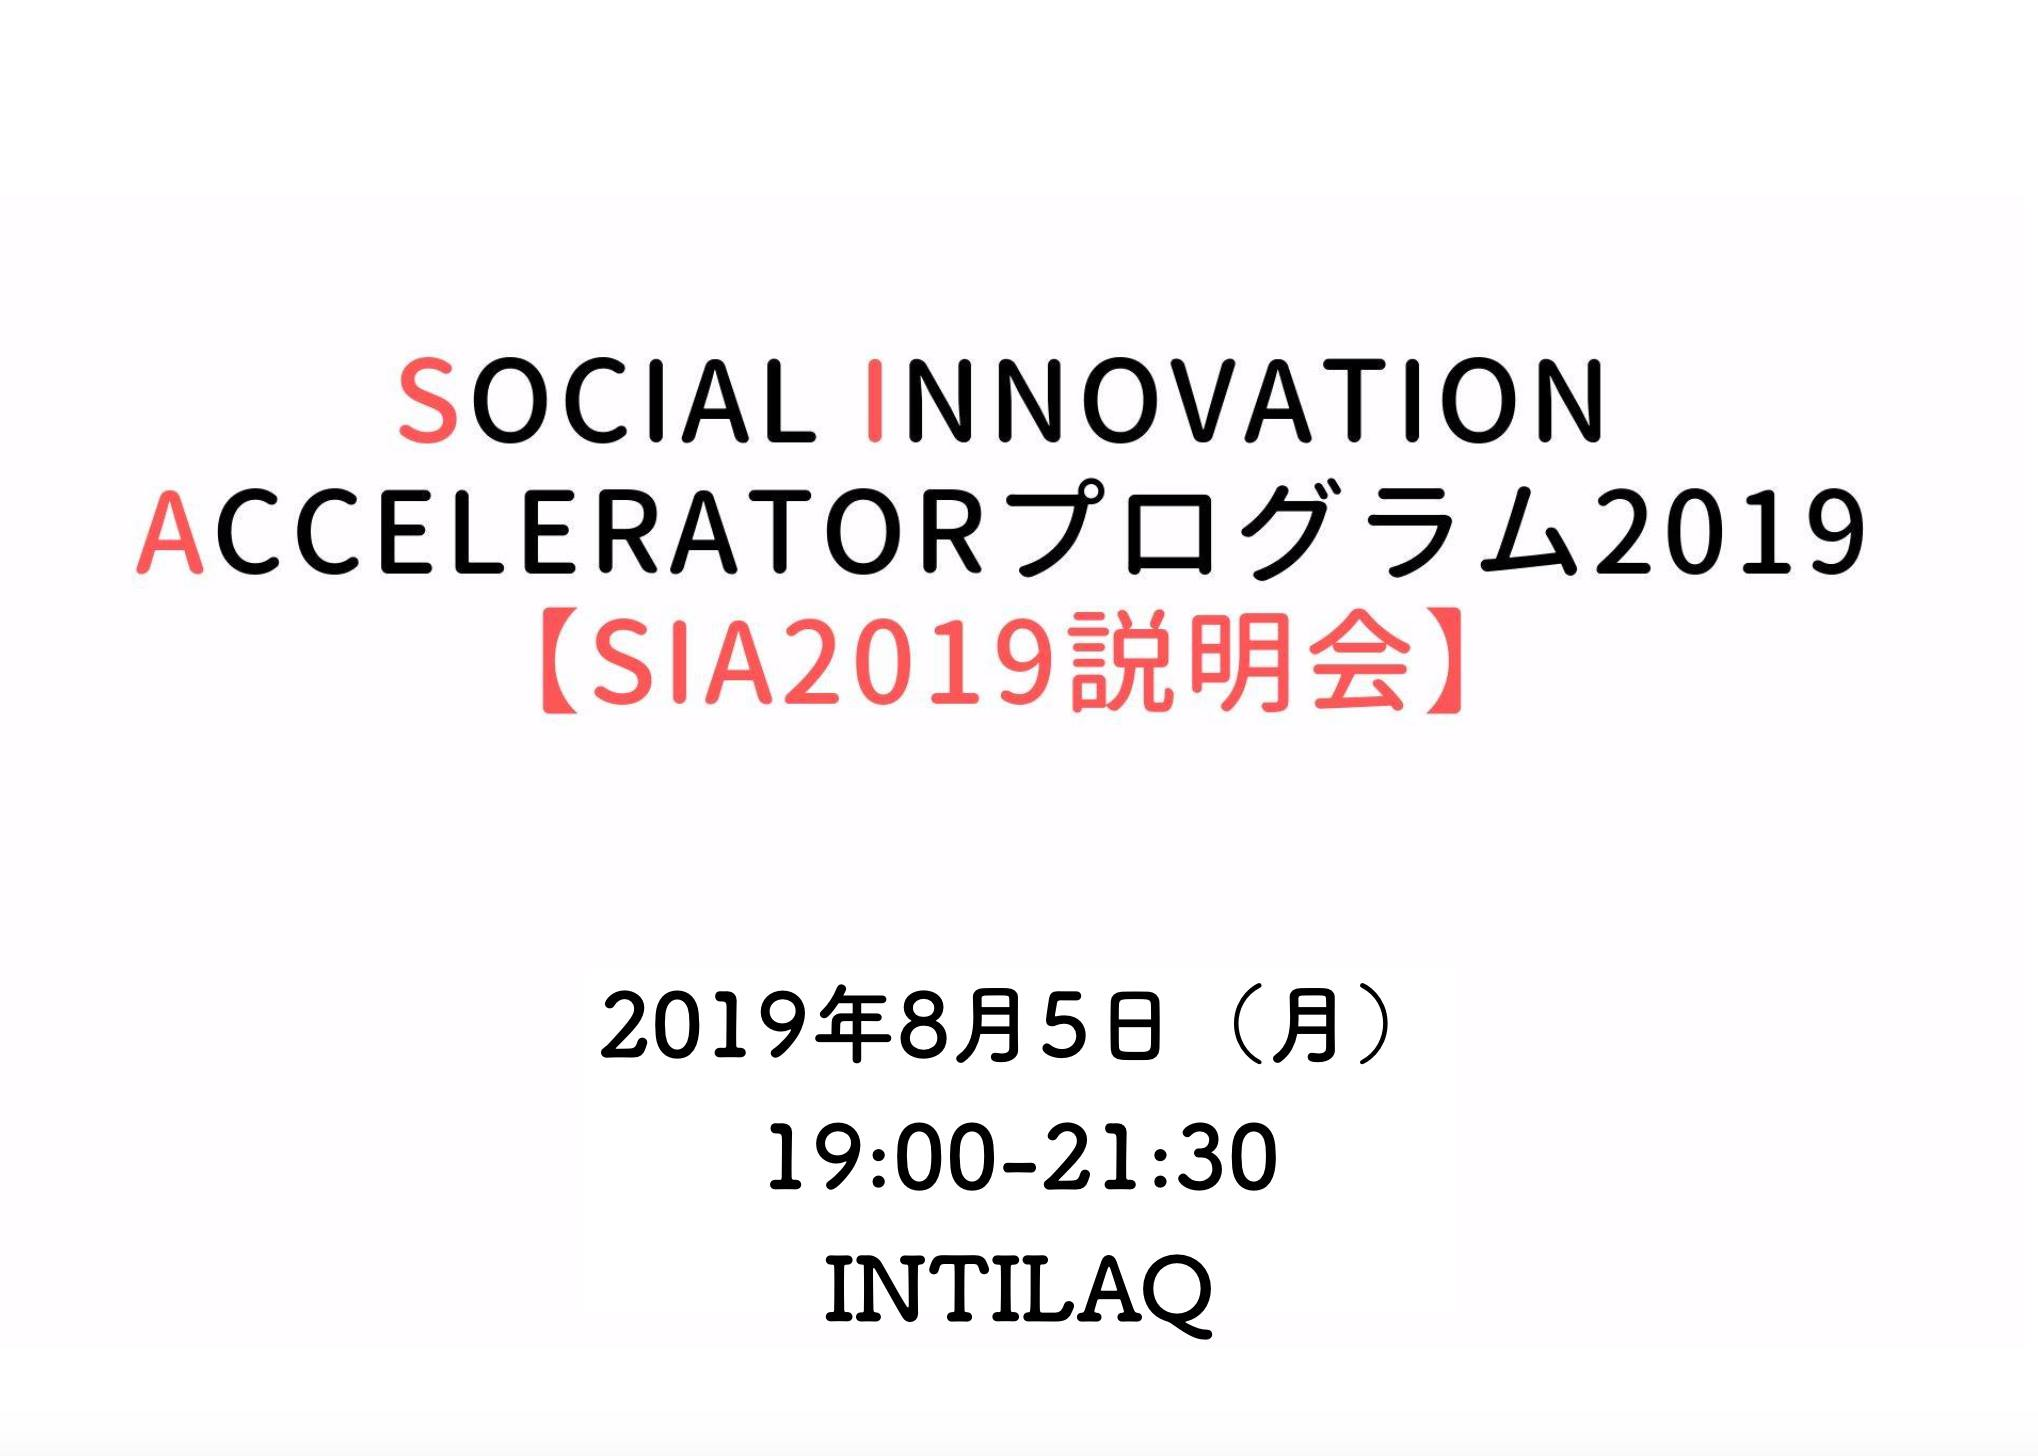 【8/5 開催】SOCIAL INNOVATION ACCELERATORプログラム SIA2019説明会@INTILAQ